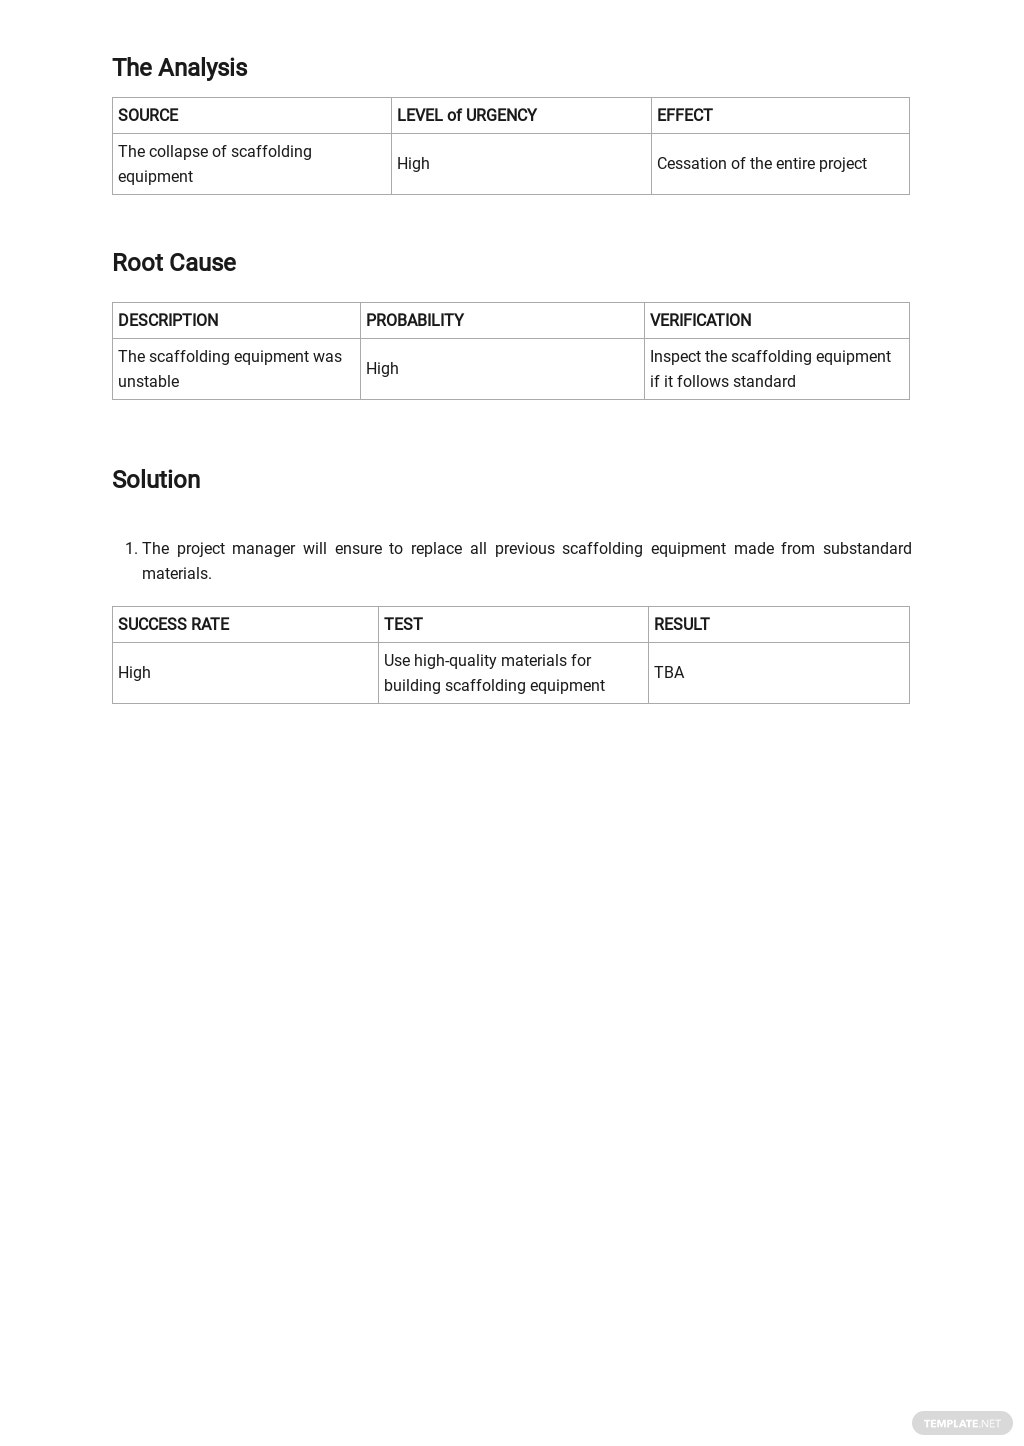 Accident Root Cause Analysis Template 2.jpe